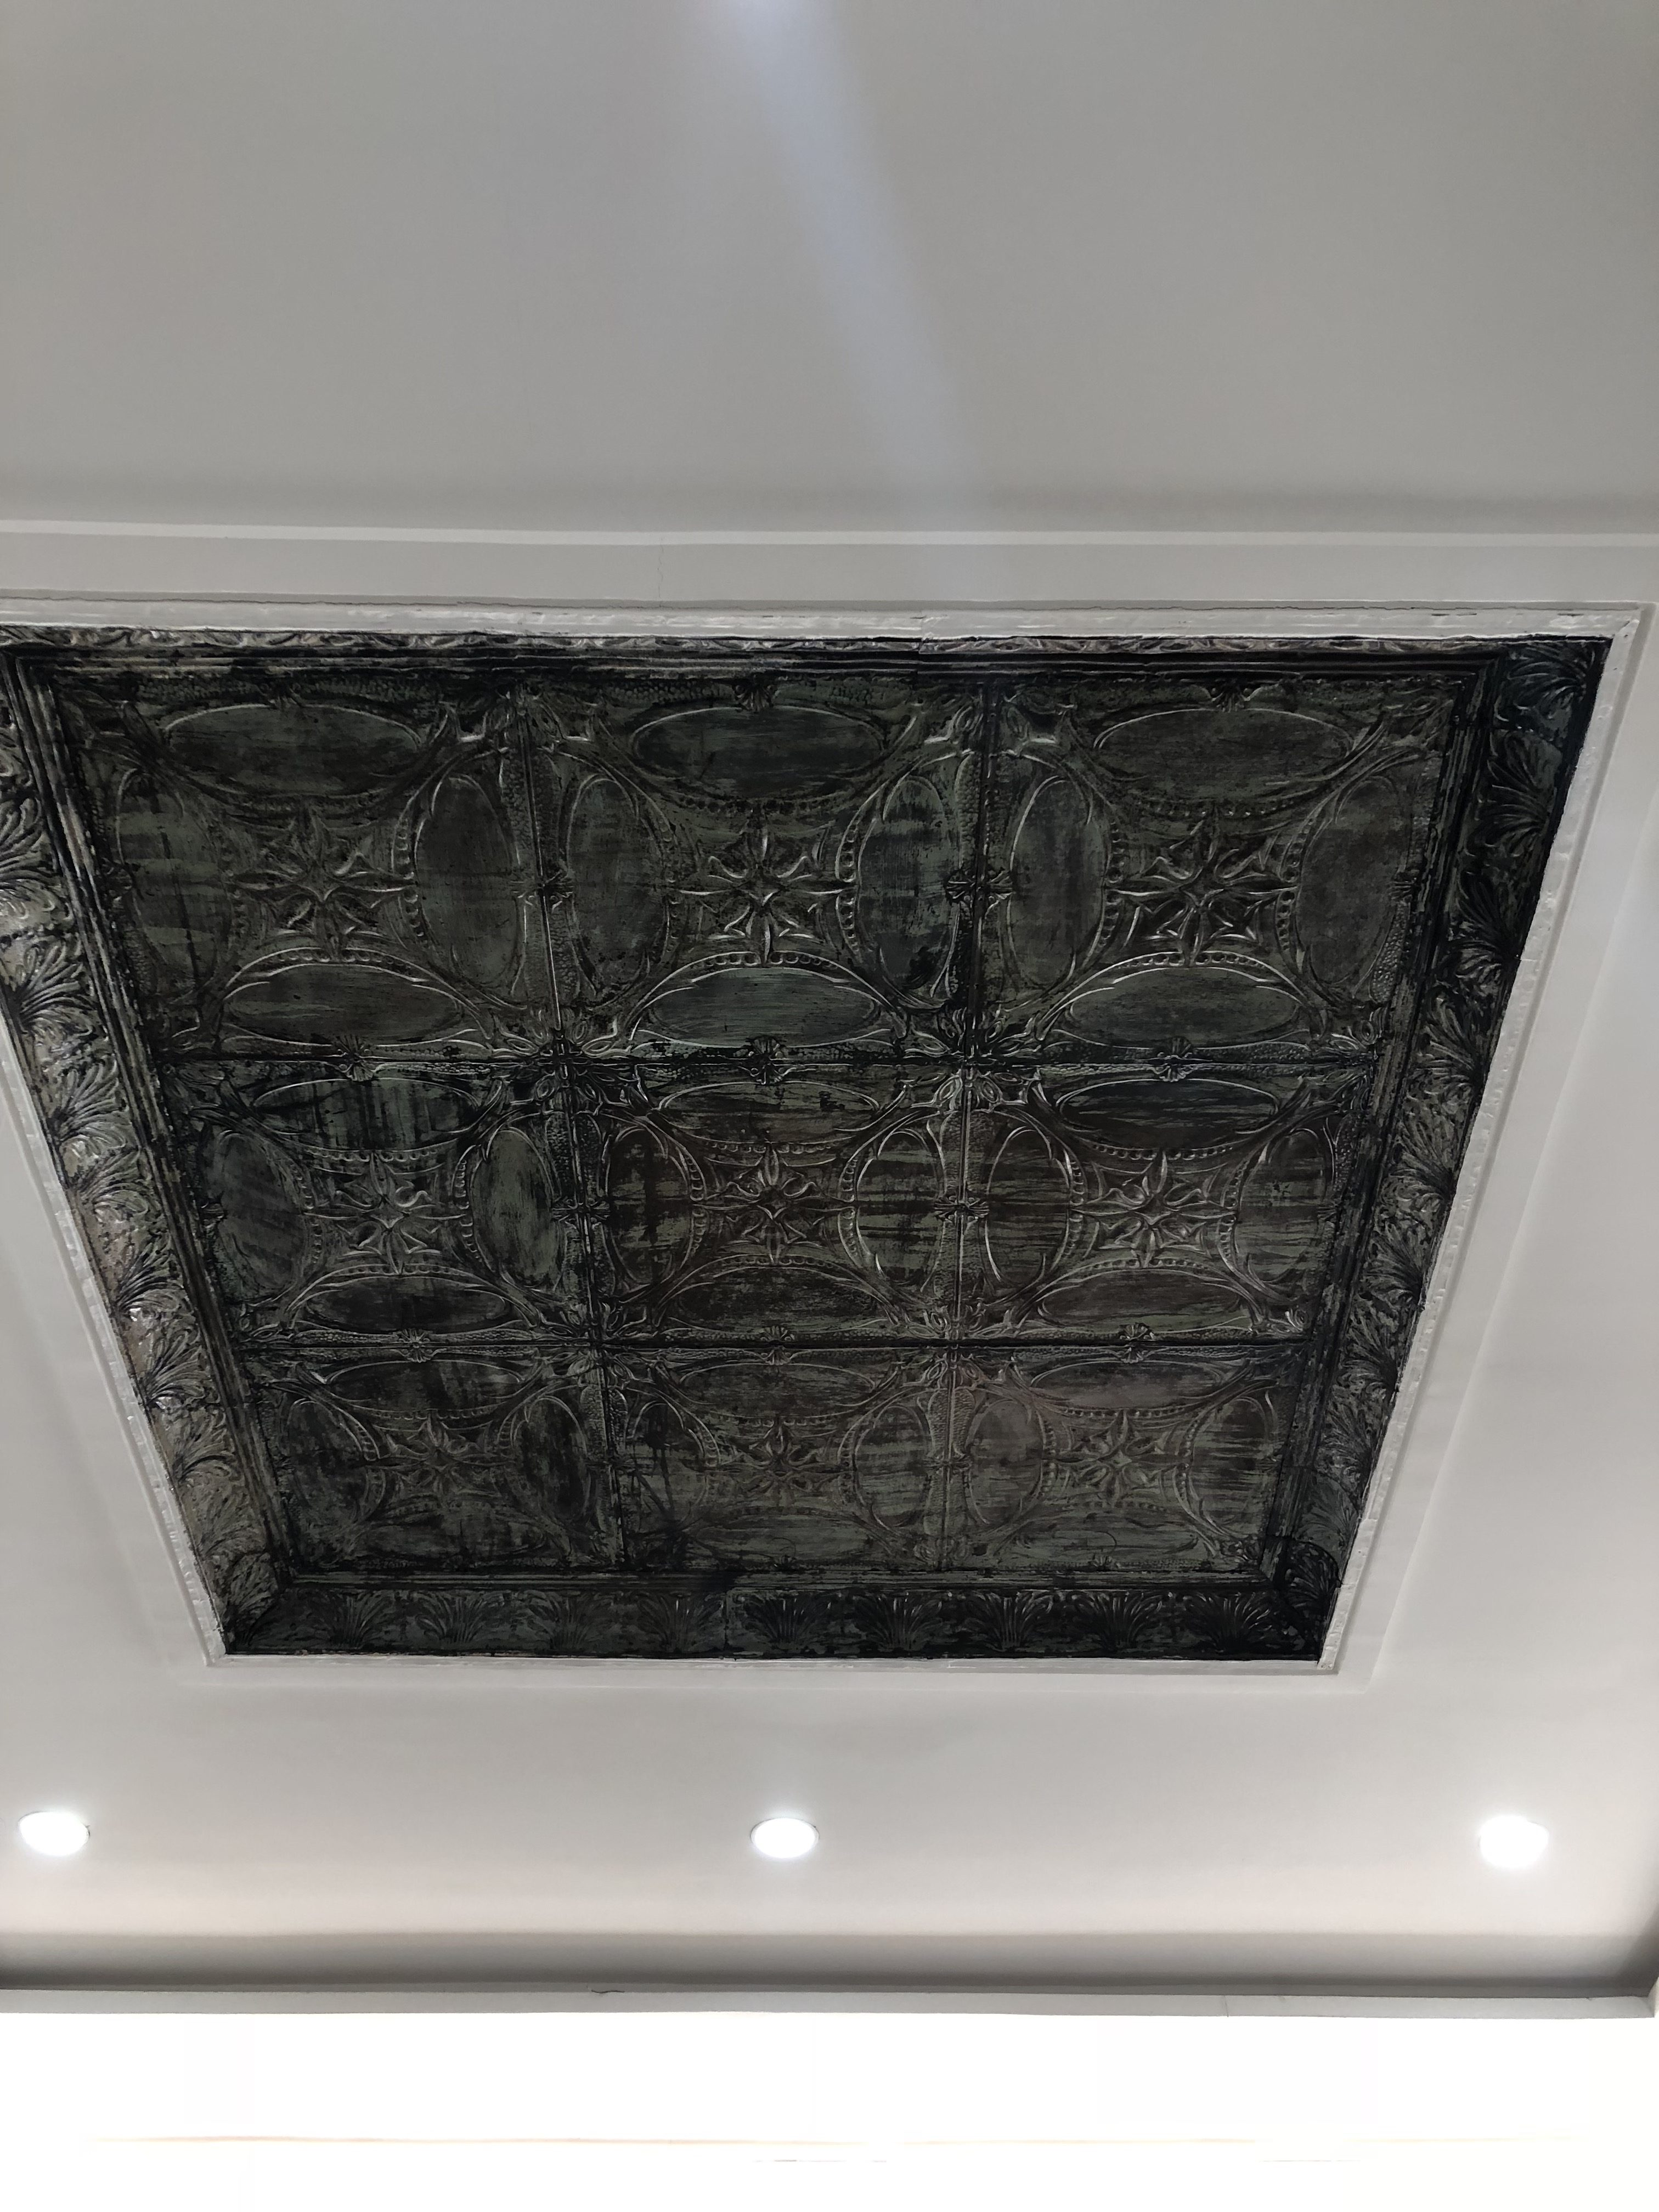 Pressed metal ceiling panel with downlights